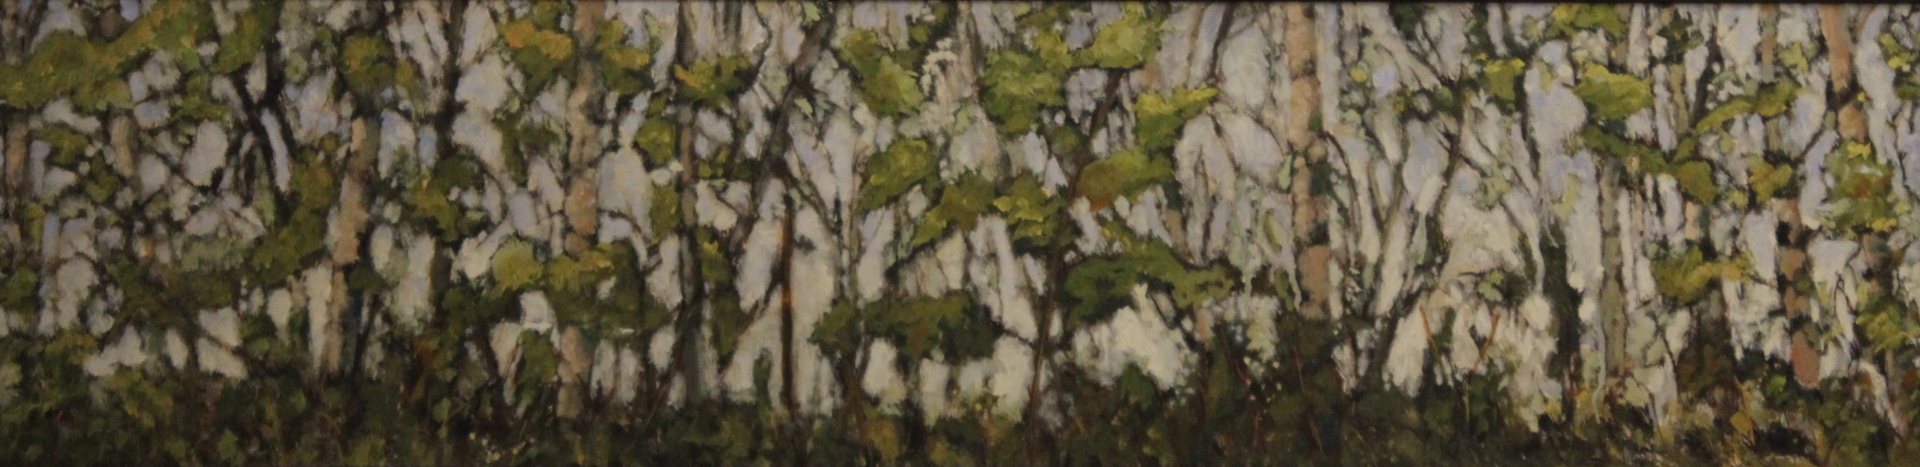 ASPEN SERIES/WINDROW I - 12X48 - OIL ON CANVAS - 2000